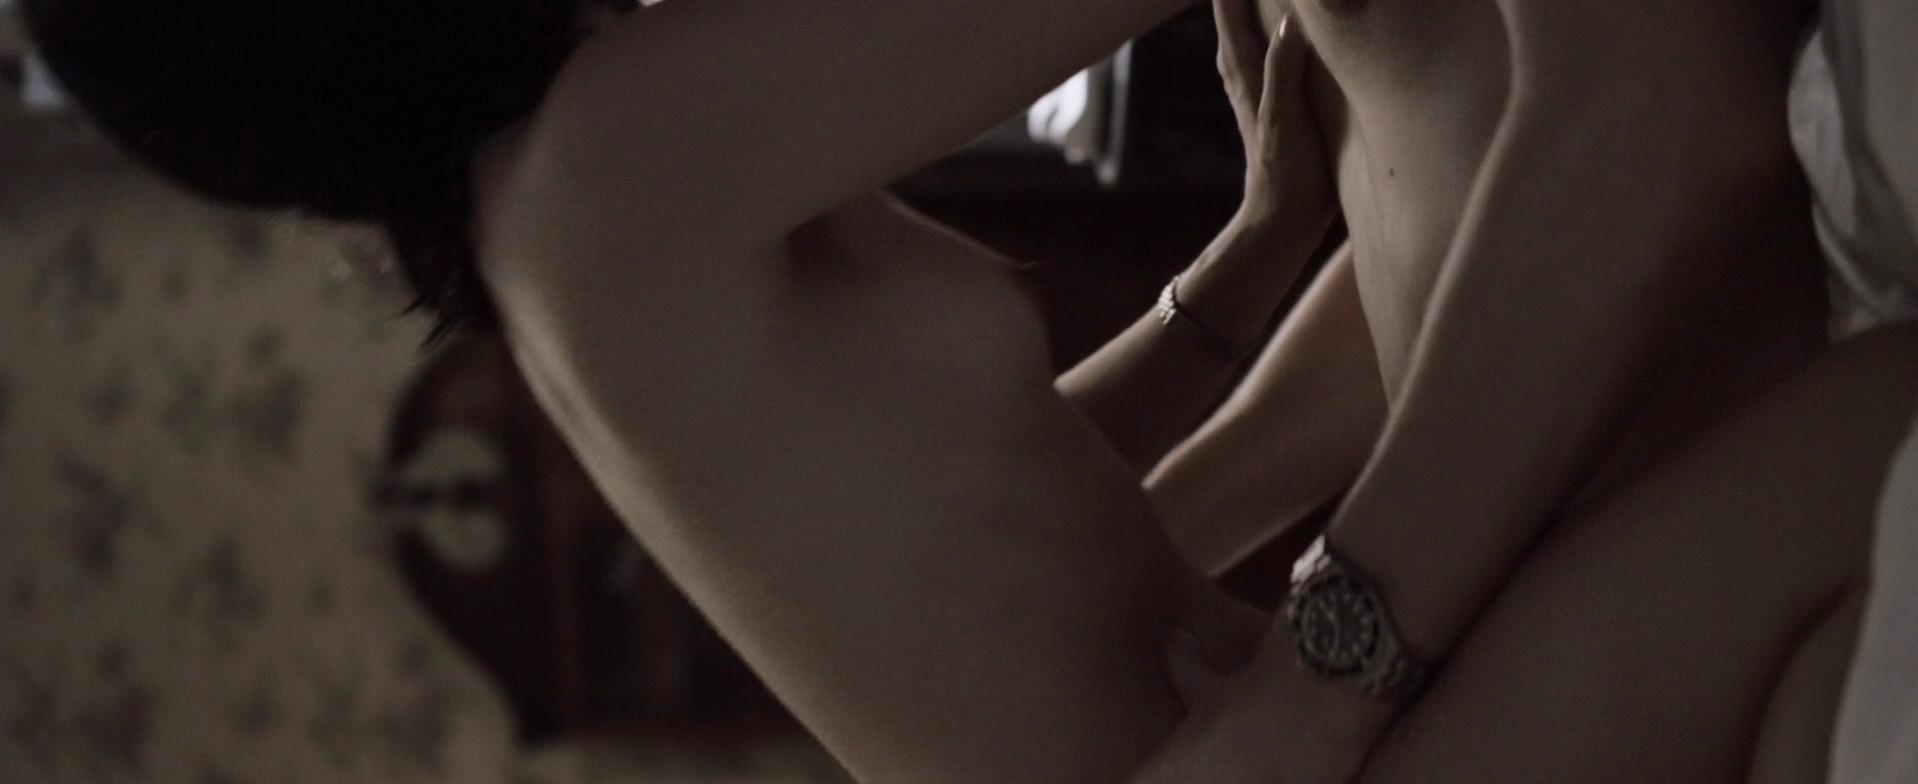 Selma Blair nude - In Their Skin (2012)